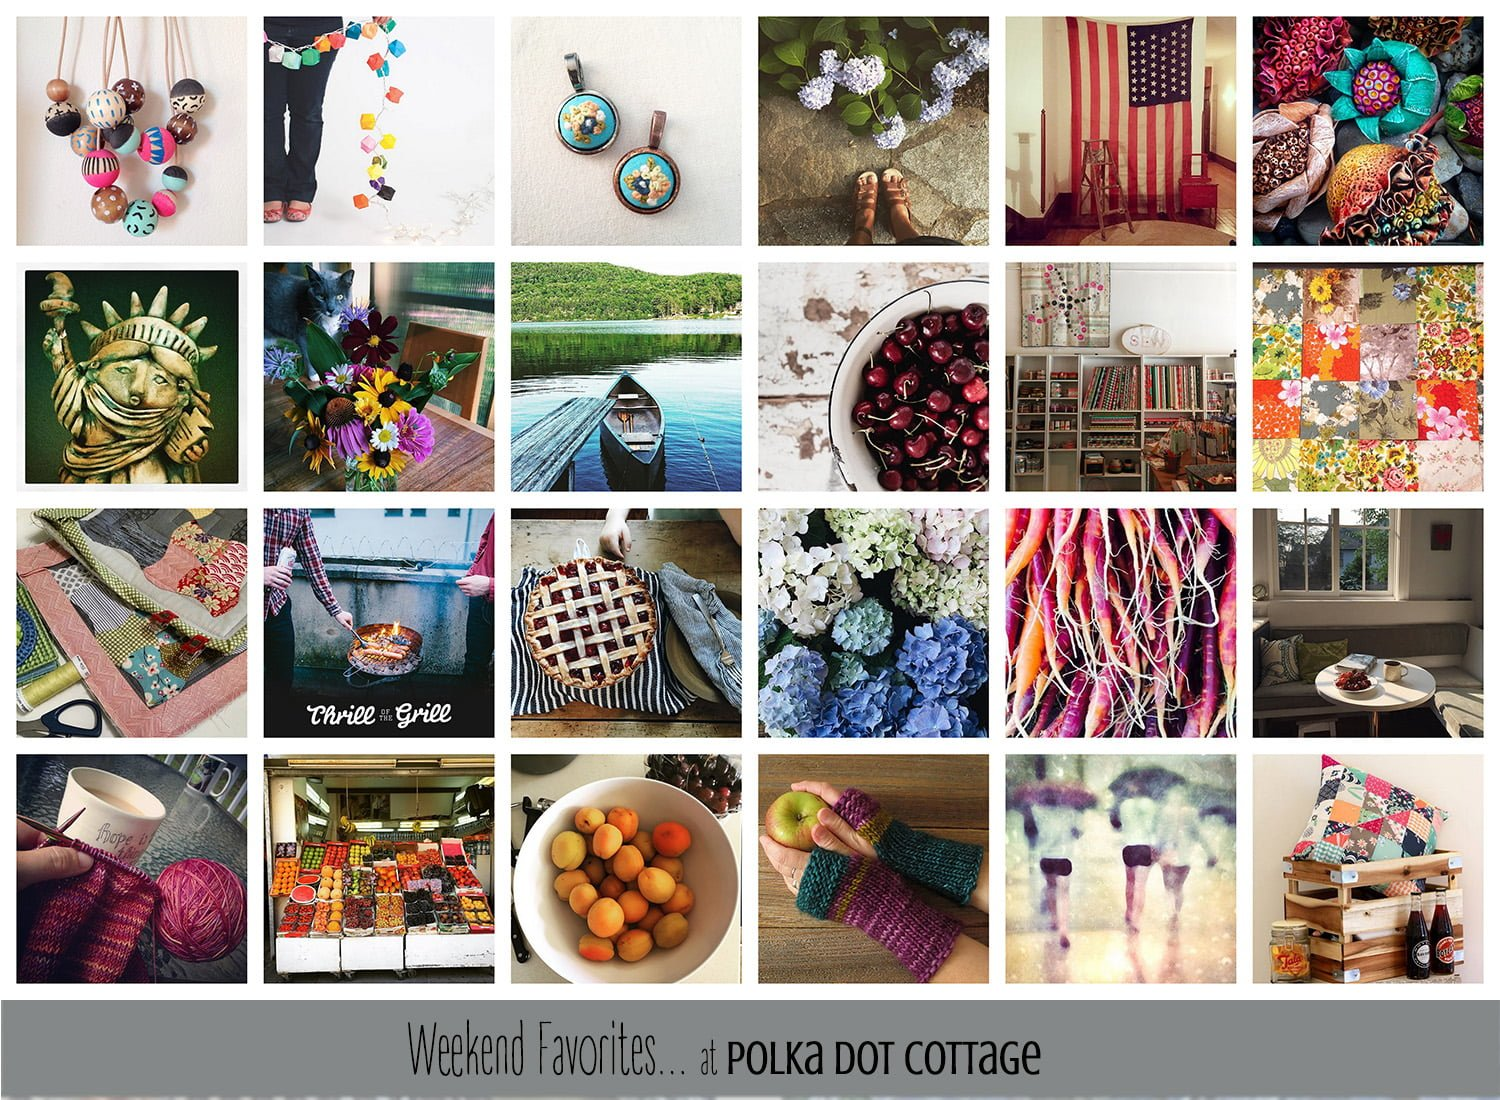 Weekend Favorites at Polka Dot Cottage